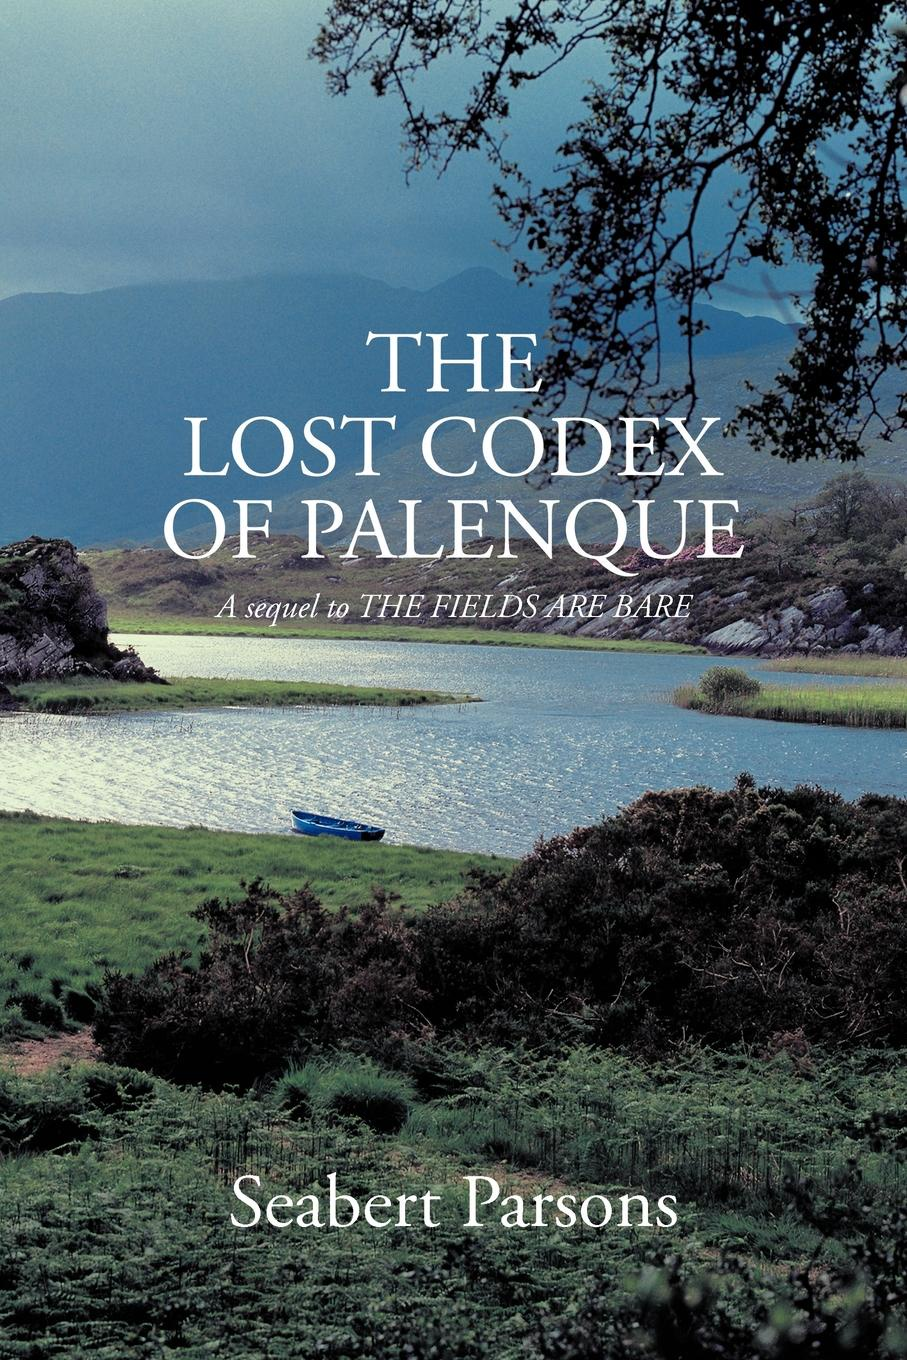 Seabert Parsons The Lost Codex of Palenque. A Sequel to the Fields Are Bare banda ms palenque hermosillo